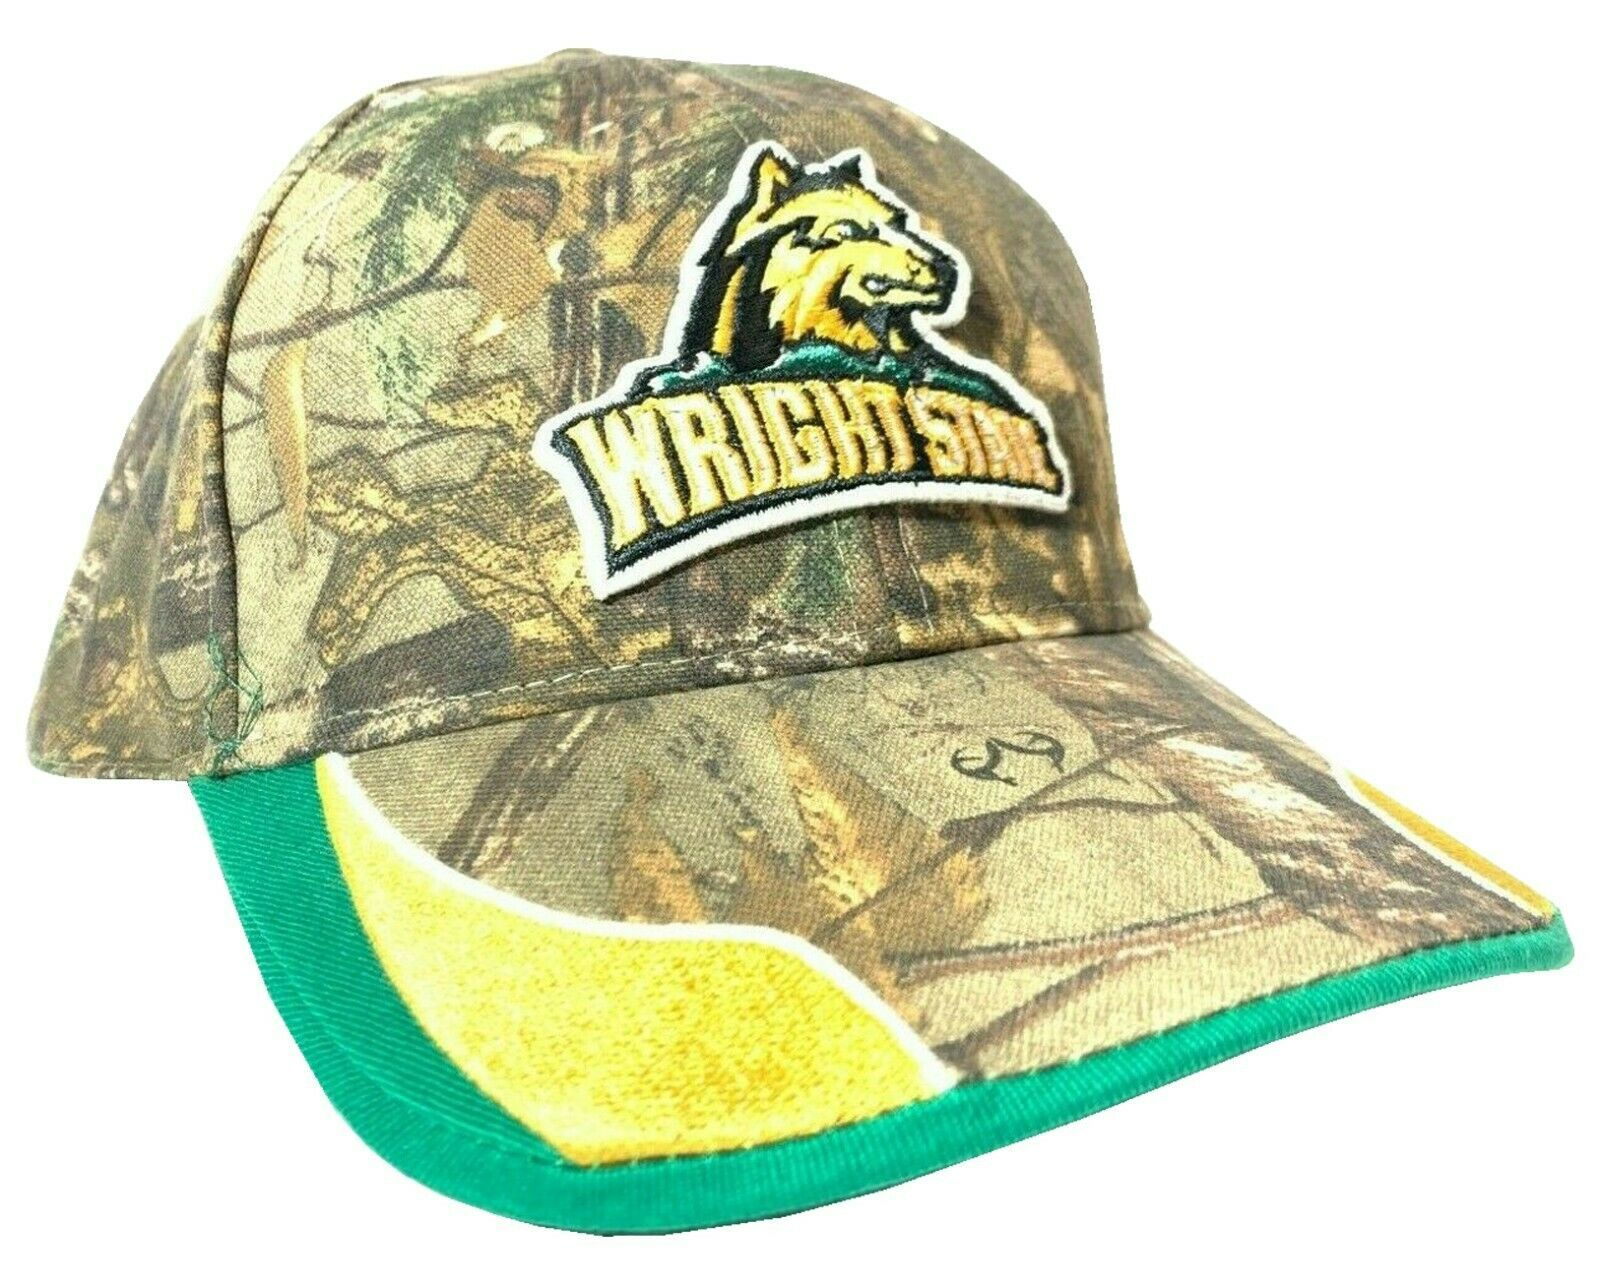 Wright State University Raiders NCAA Outdoor Camo Adjustable D-Fit Strap Hat - $17.95